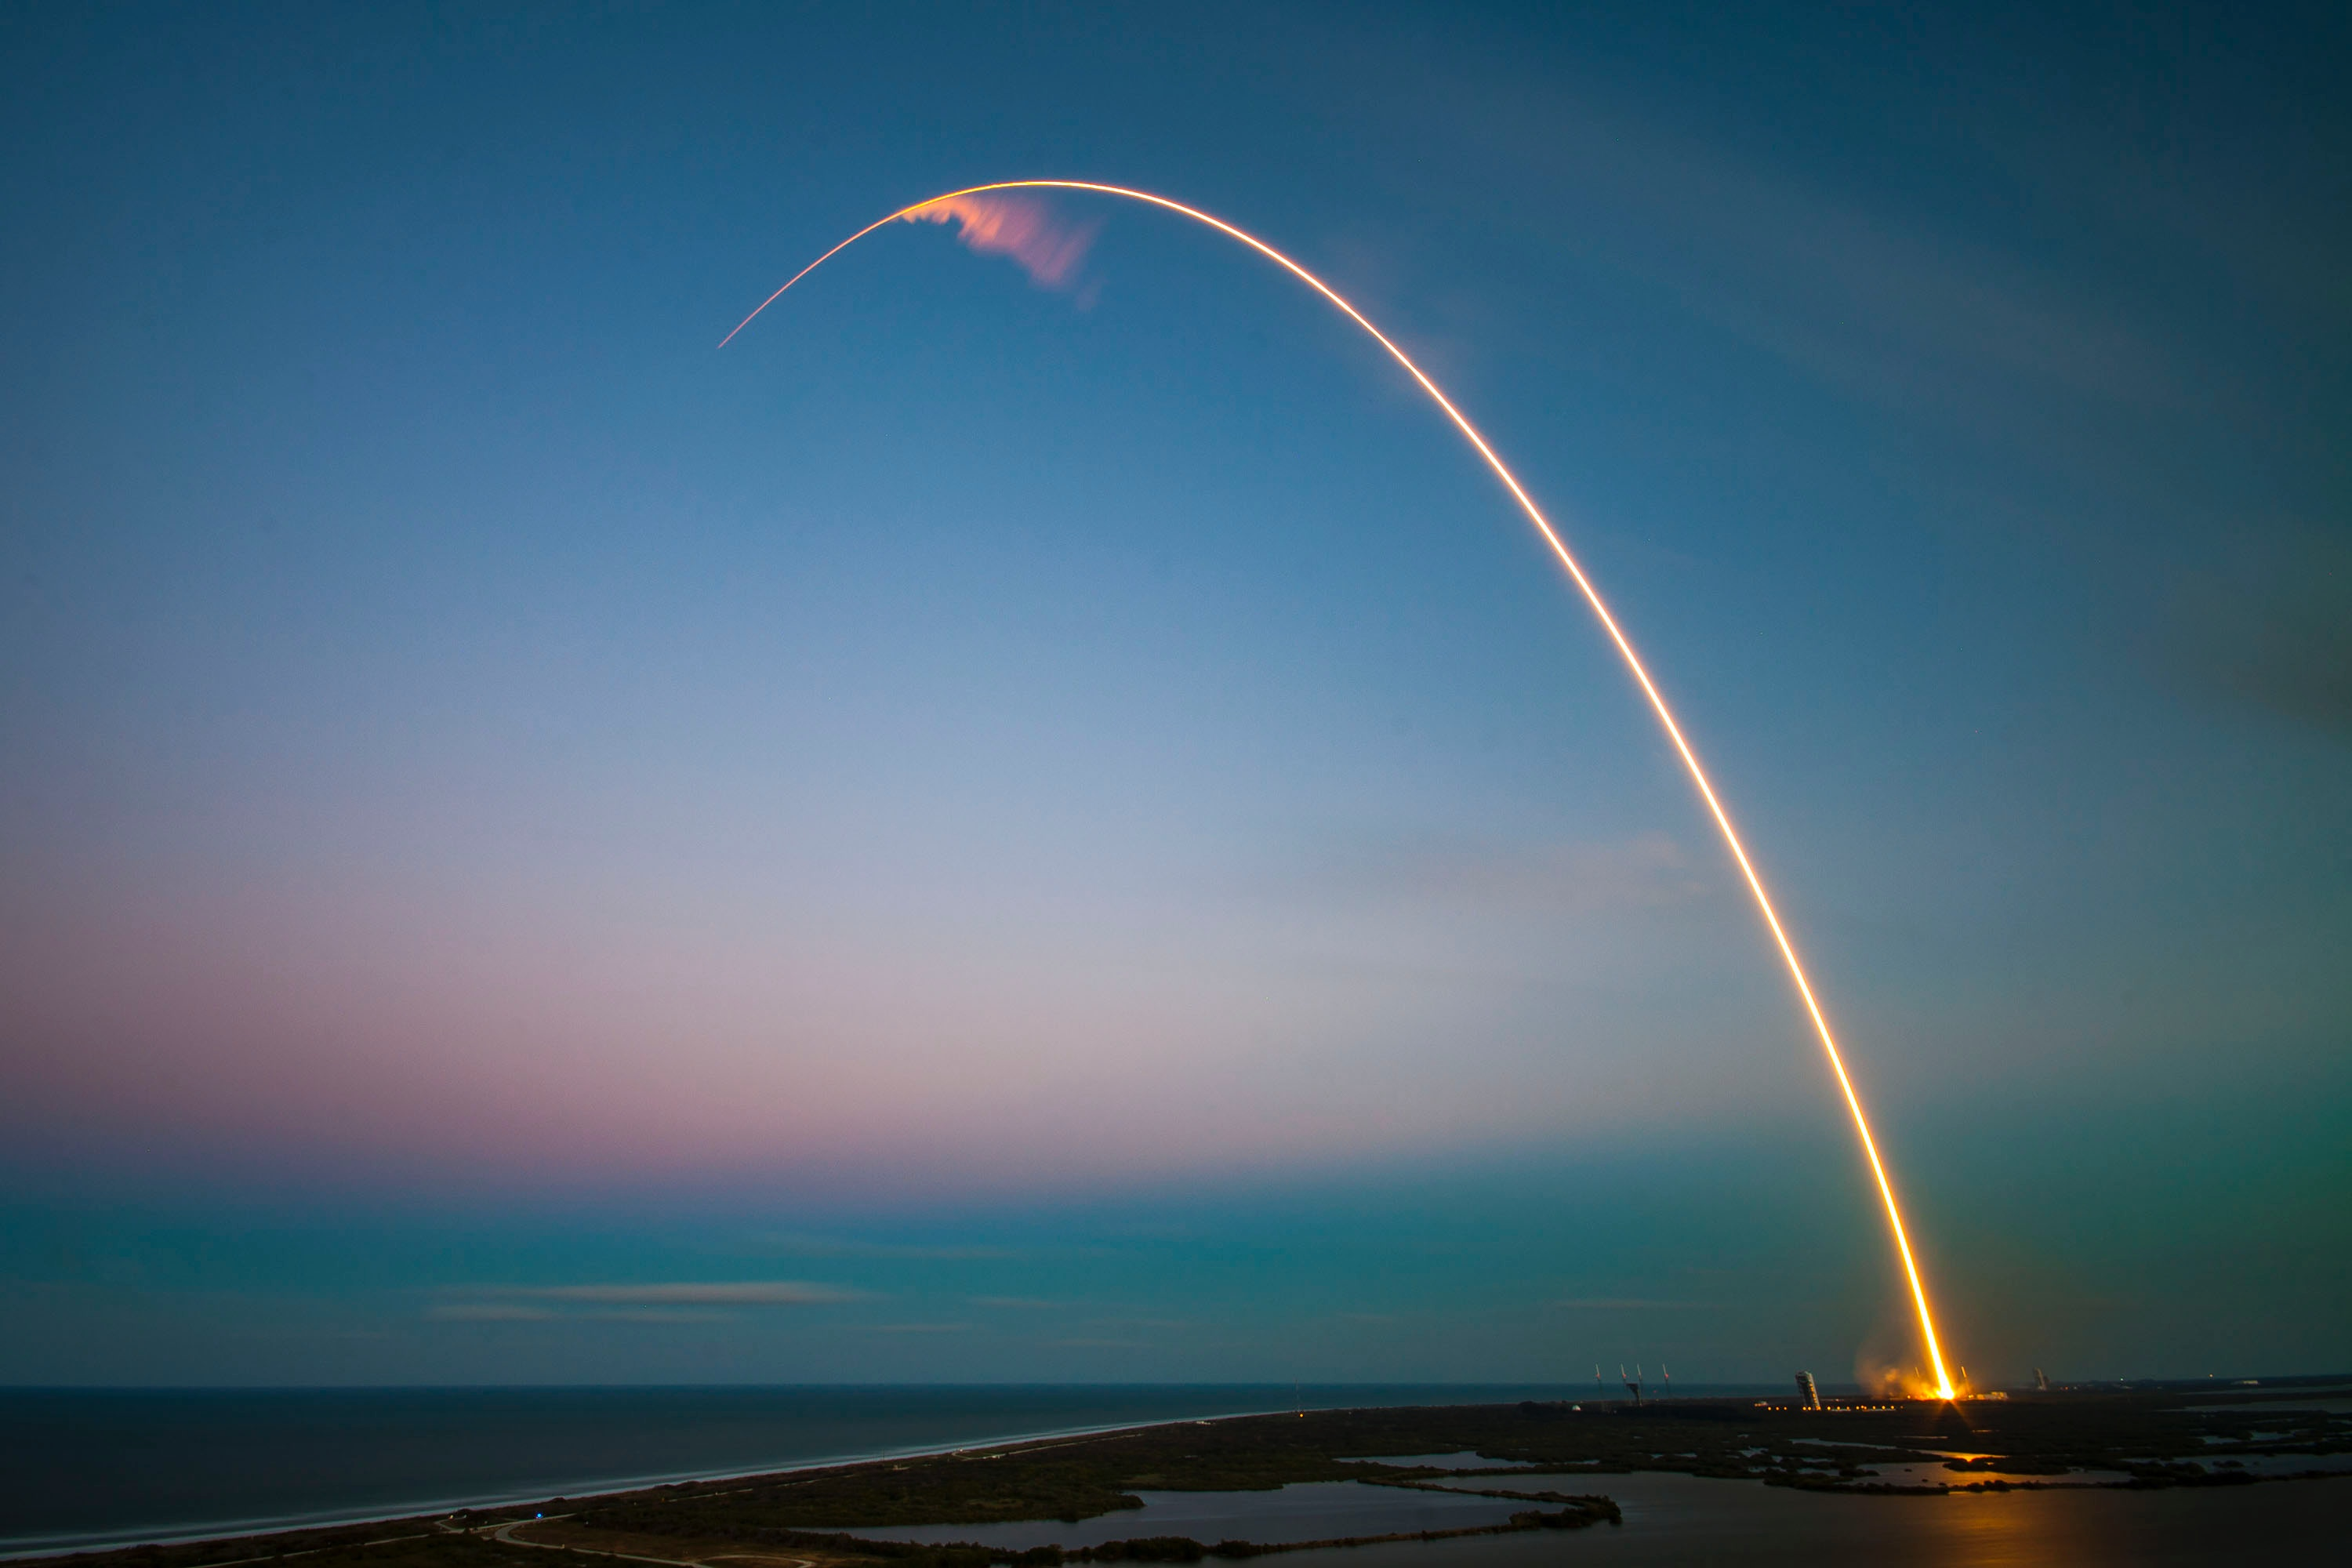 spacex-71873-unsplash